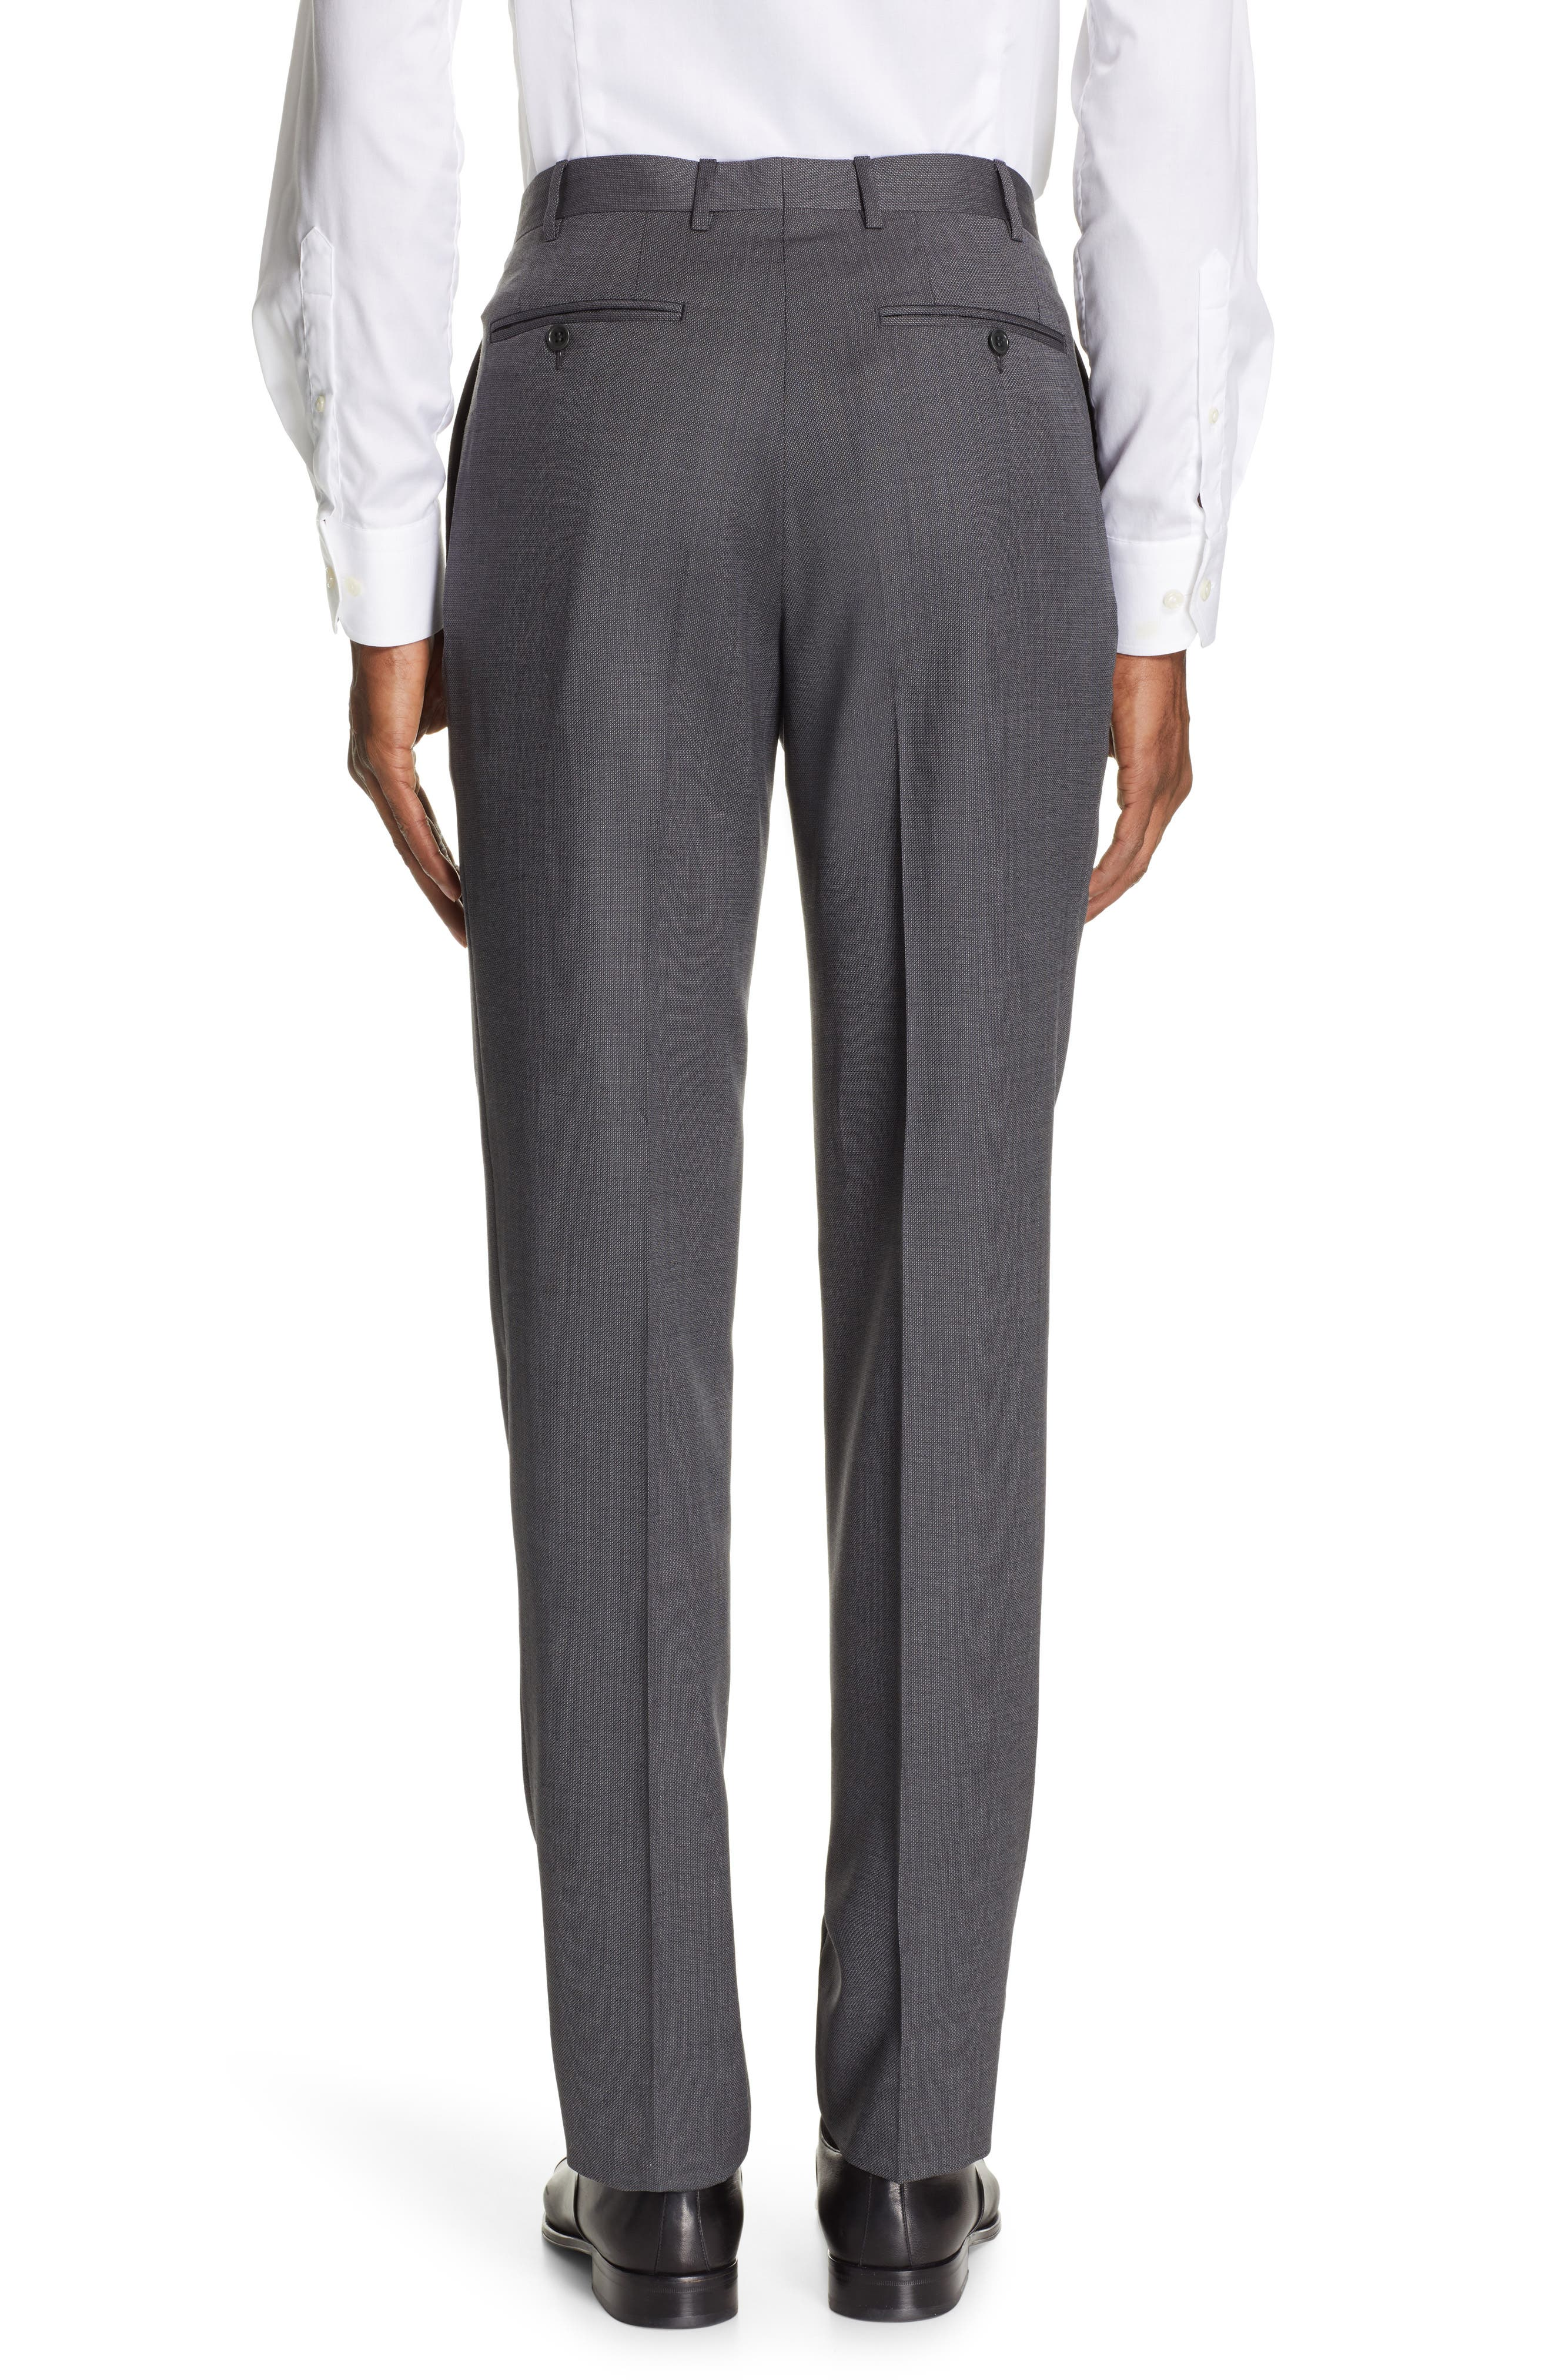 CANALI, Flat Front Solid Wool Trousers, Alternate thumbnail 2, color, CHARCOAL